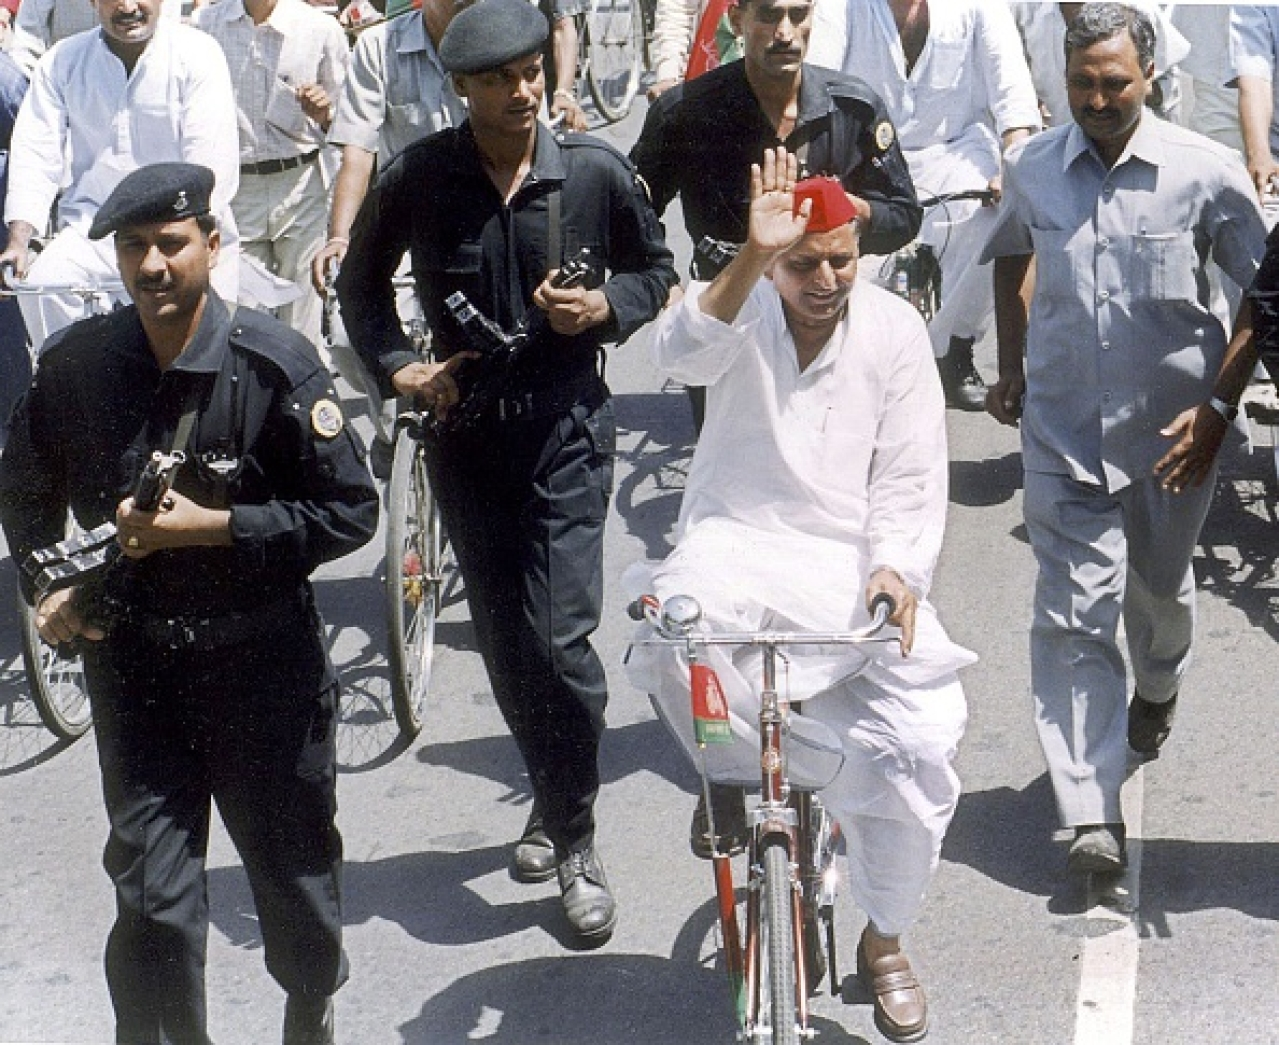 Mulayam in a cycle rally (PAWAN KUMAR/AFP/Getty Images)